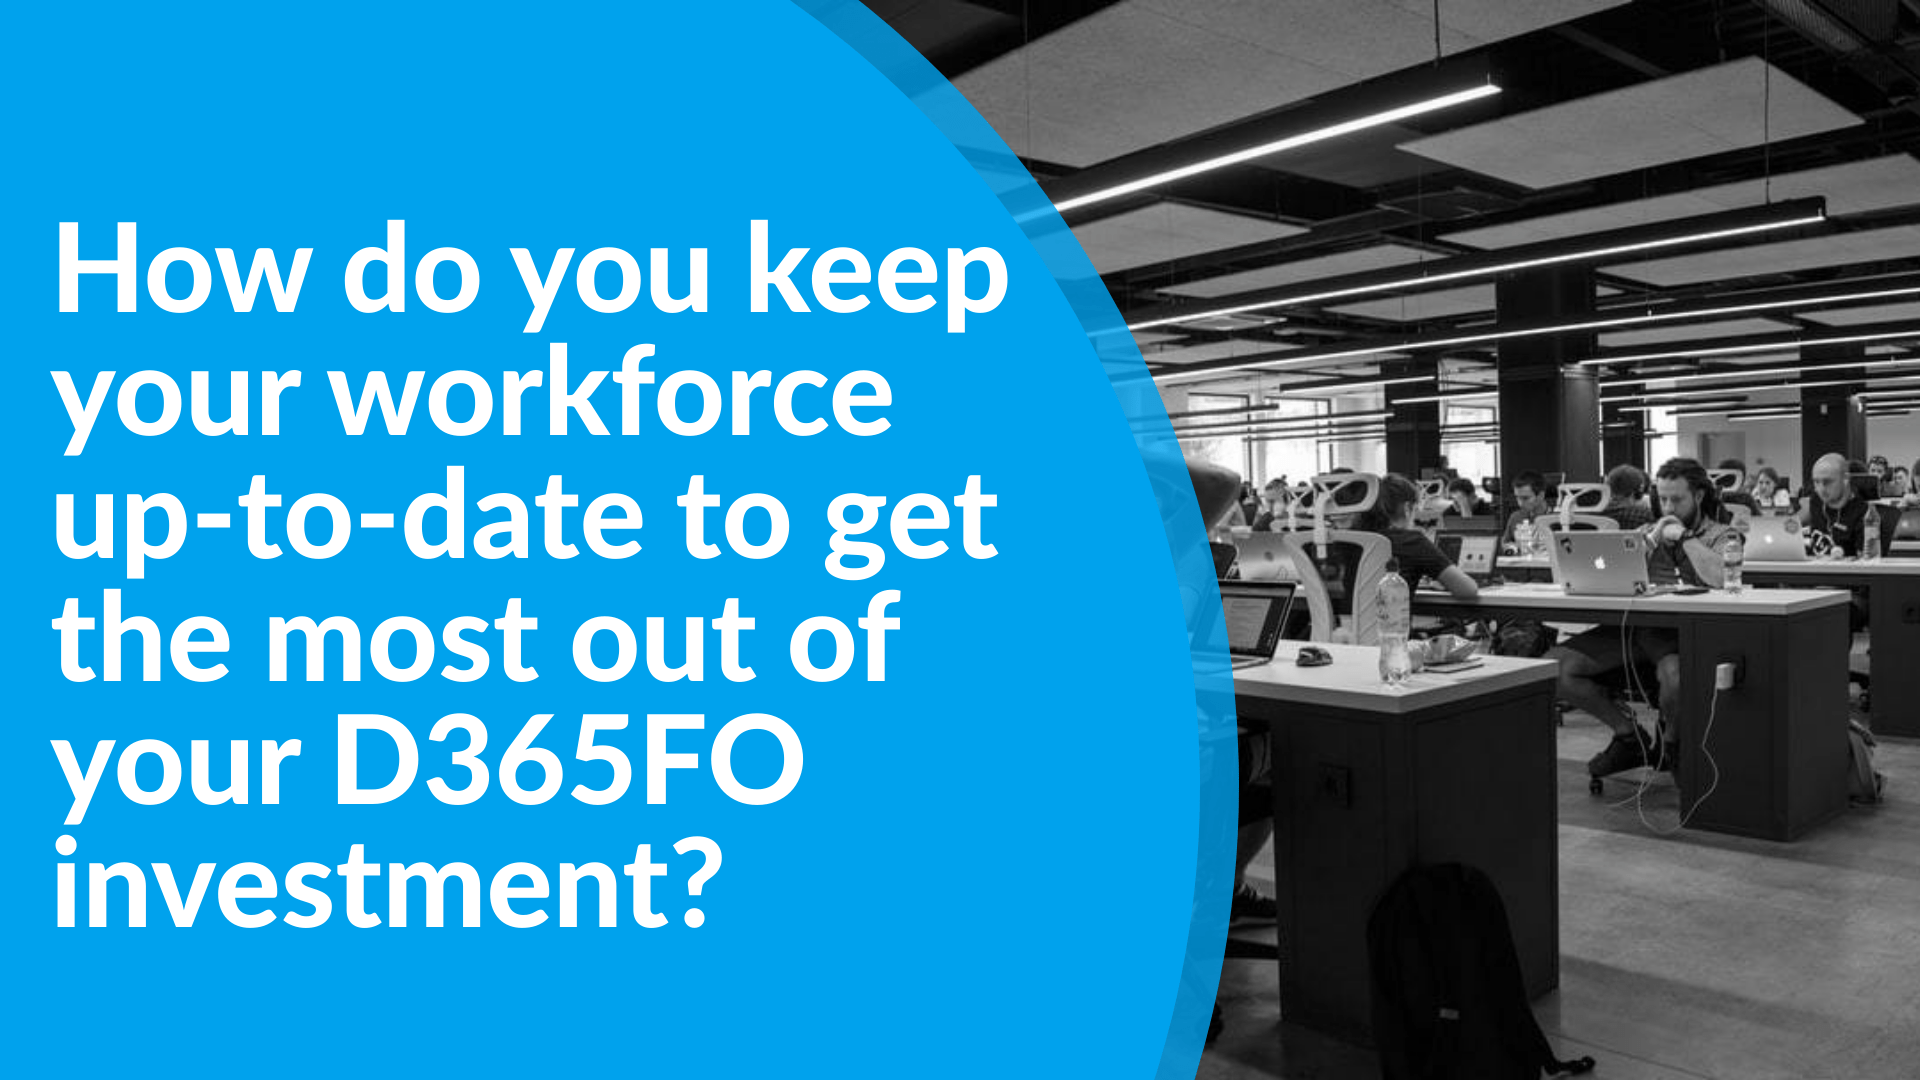 How do you keep your workforce up to date to get the most out of your D365FO investment